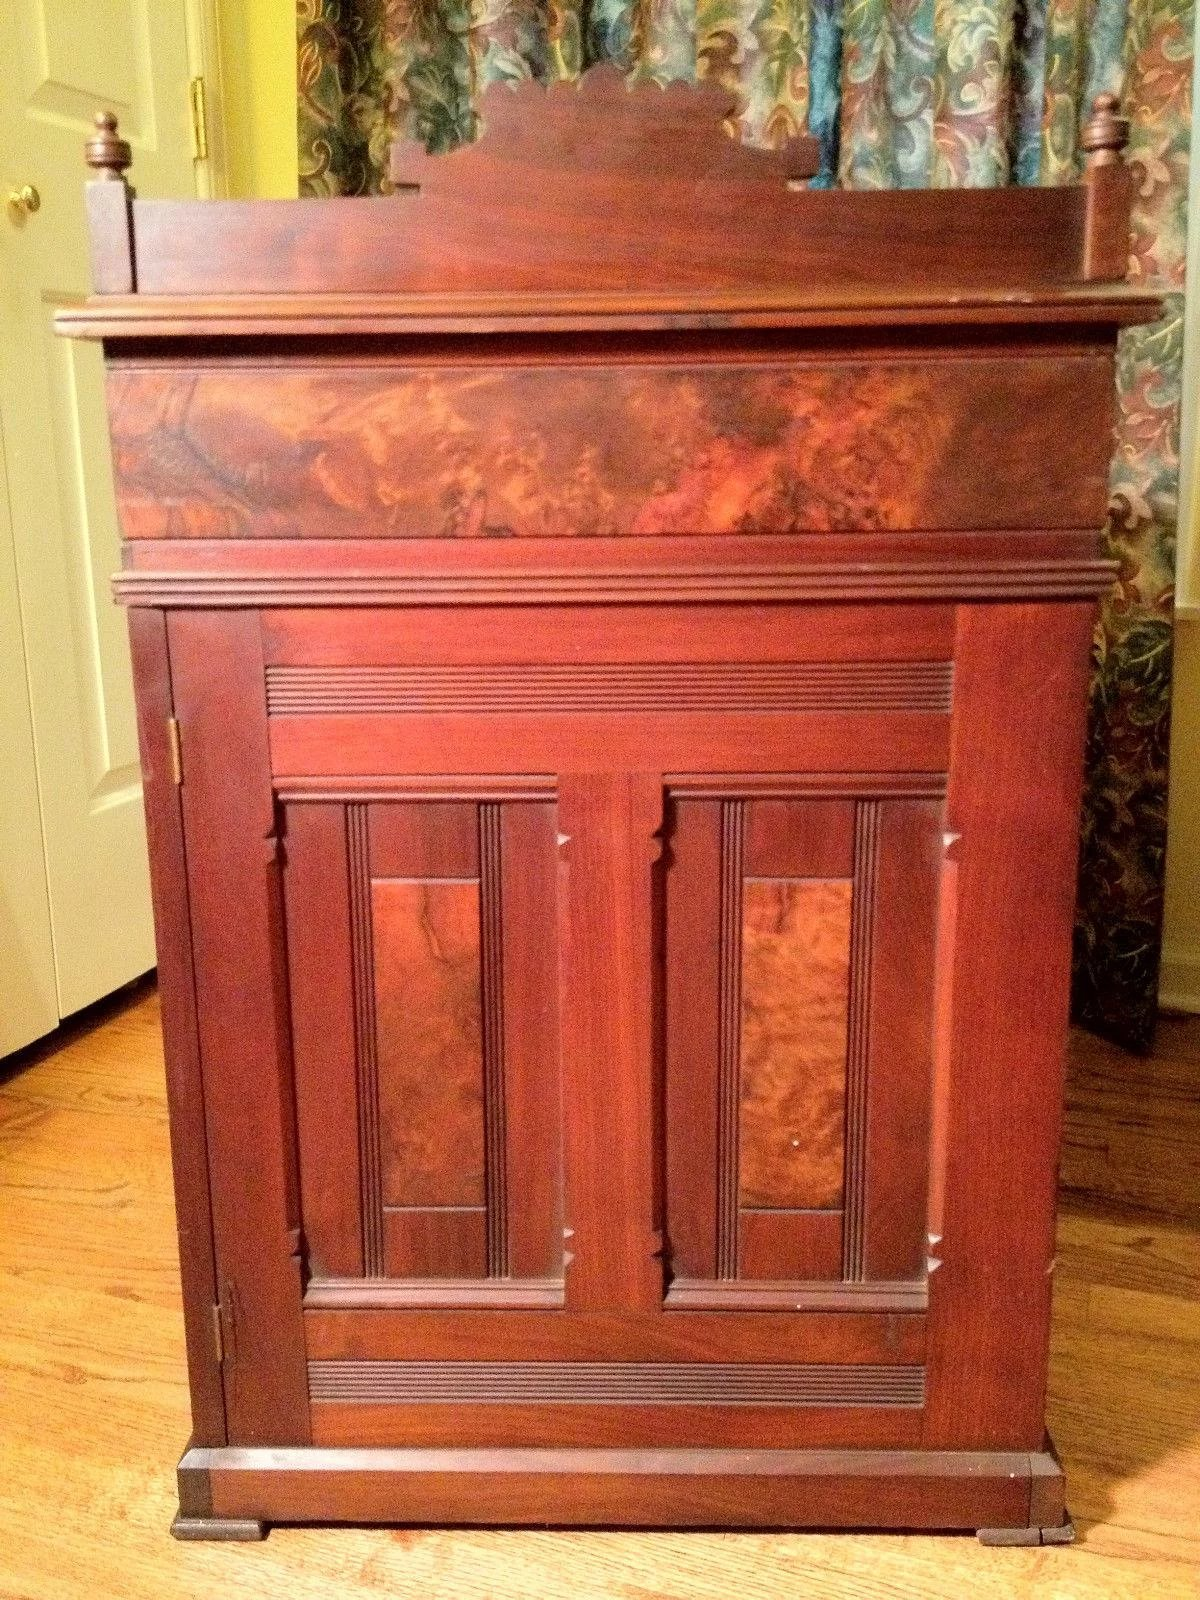 Antique Burled Mahogany Desk Side Drawers Topper And